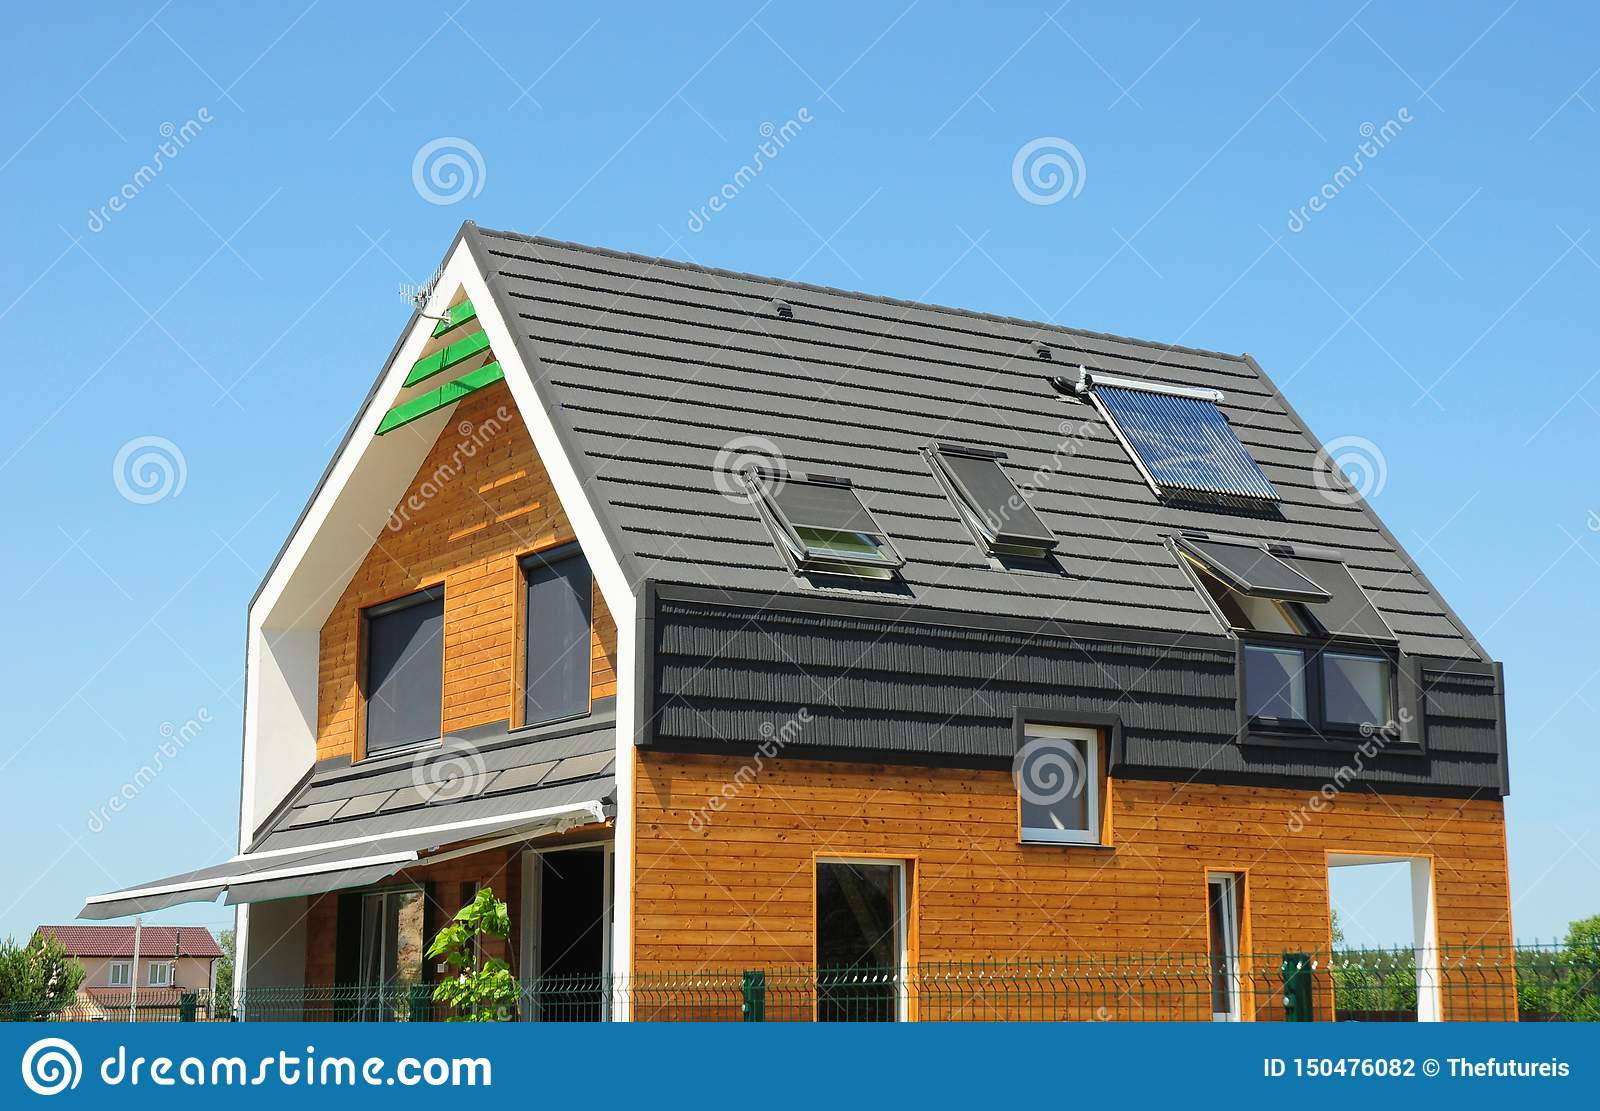 Modern Passive House Exterior. Modern energy efficiency house with skylight windows and solar panels on the roof top